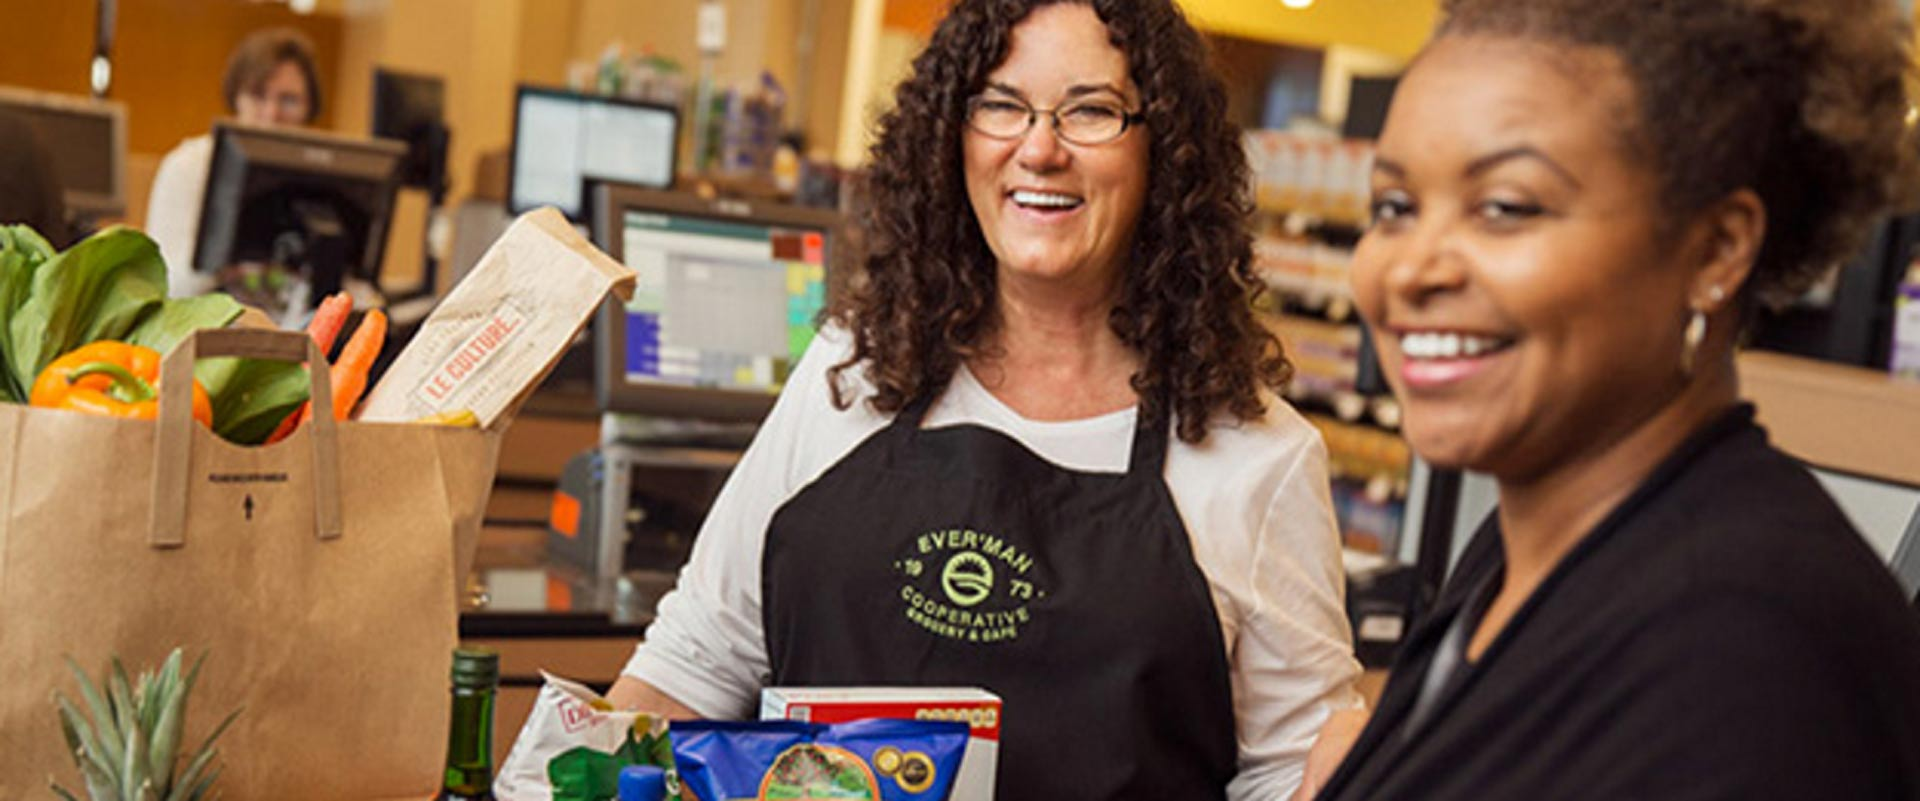 Businesses we have helped: Ever'man Cooperative Grocery & Cafe